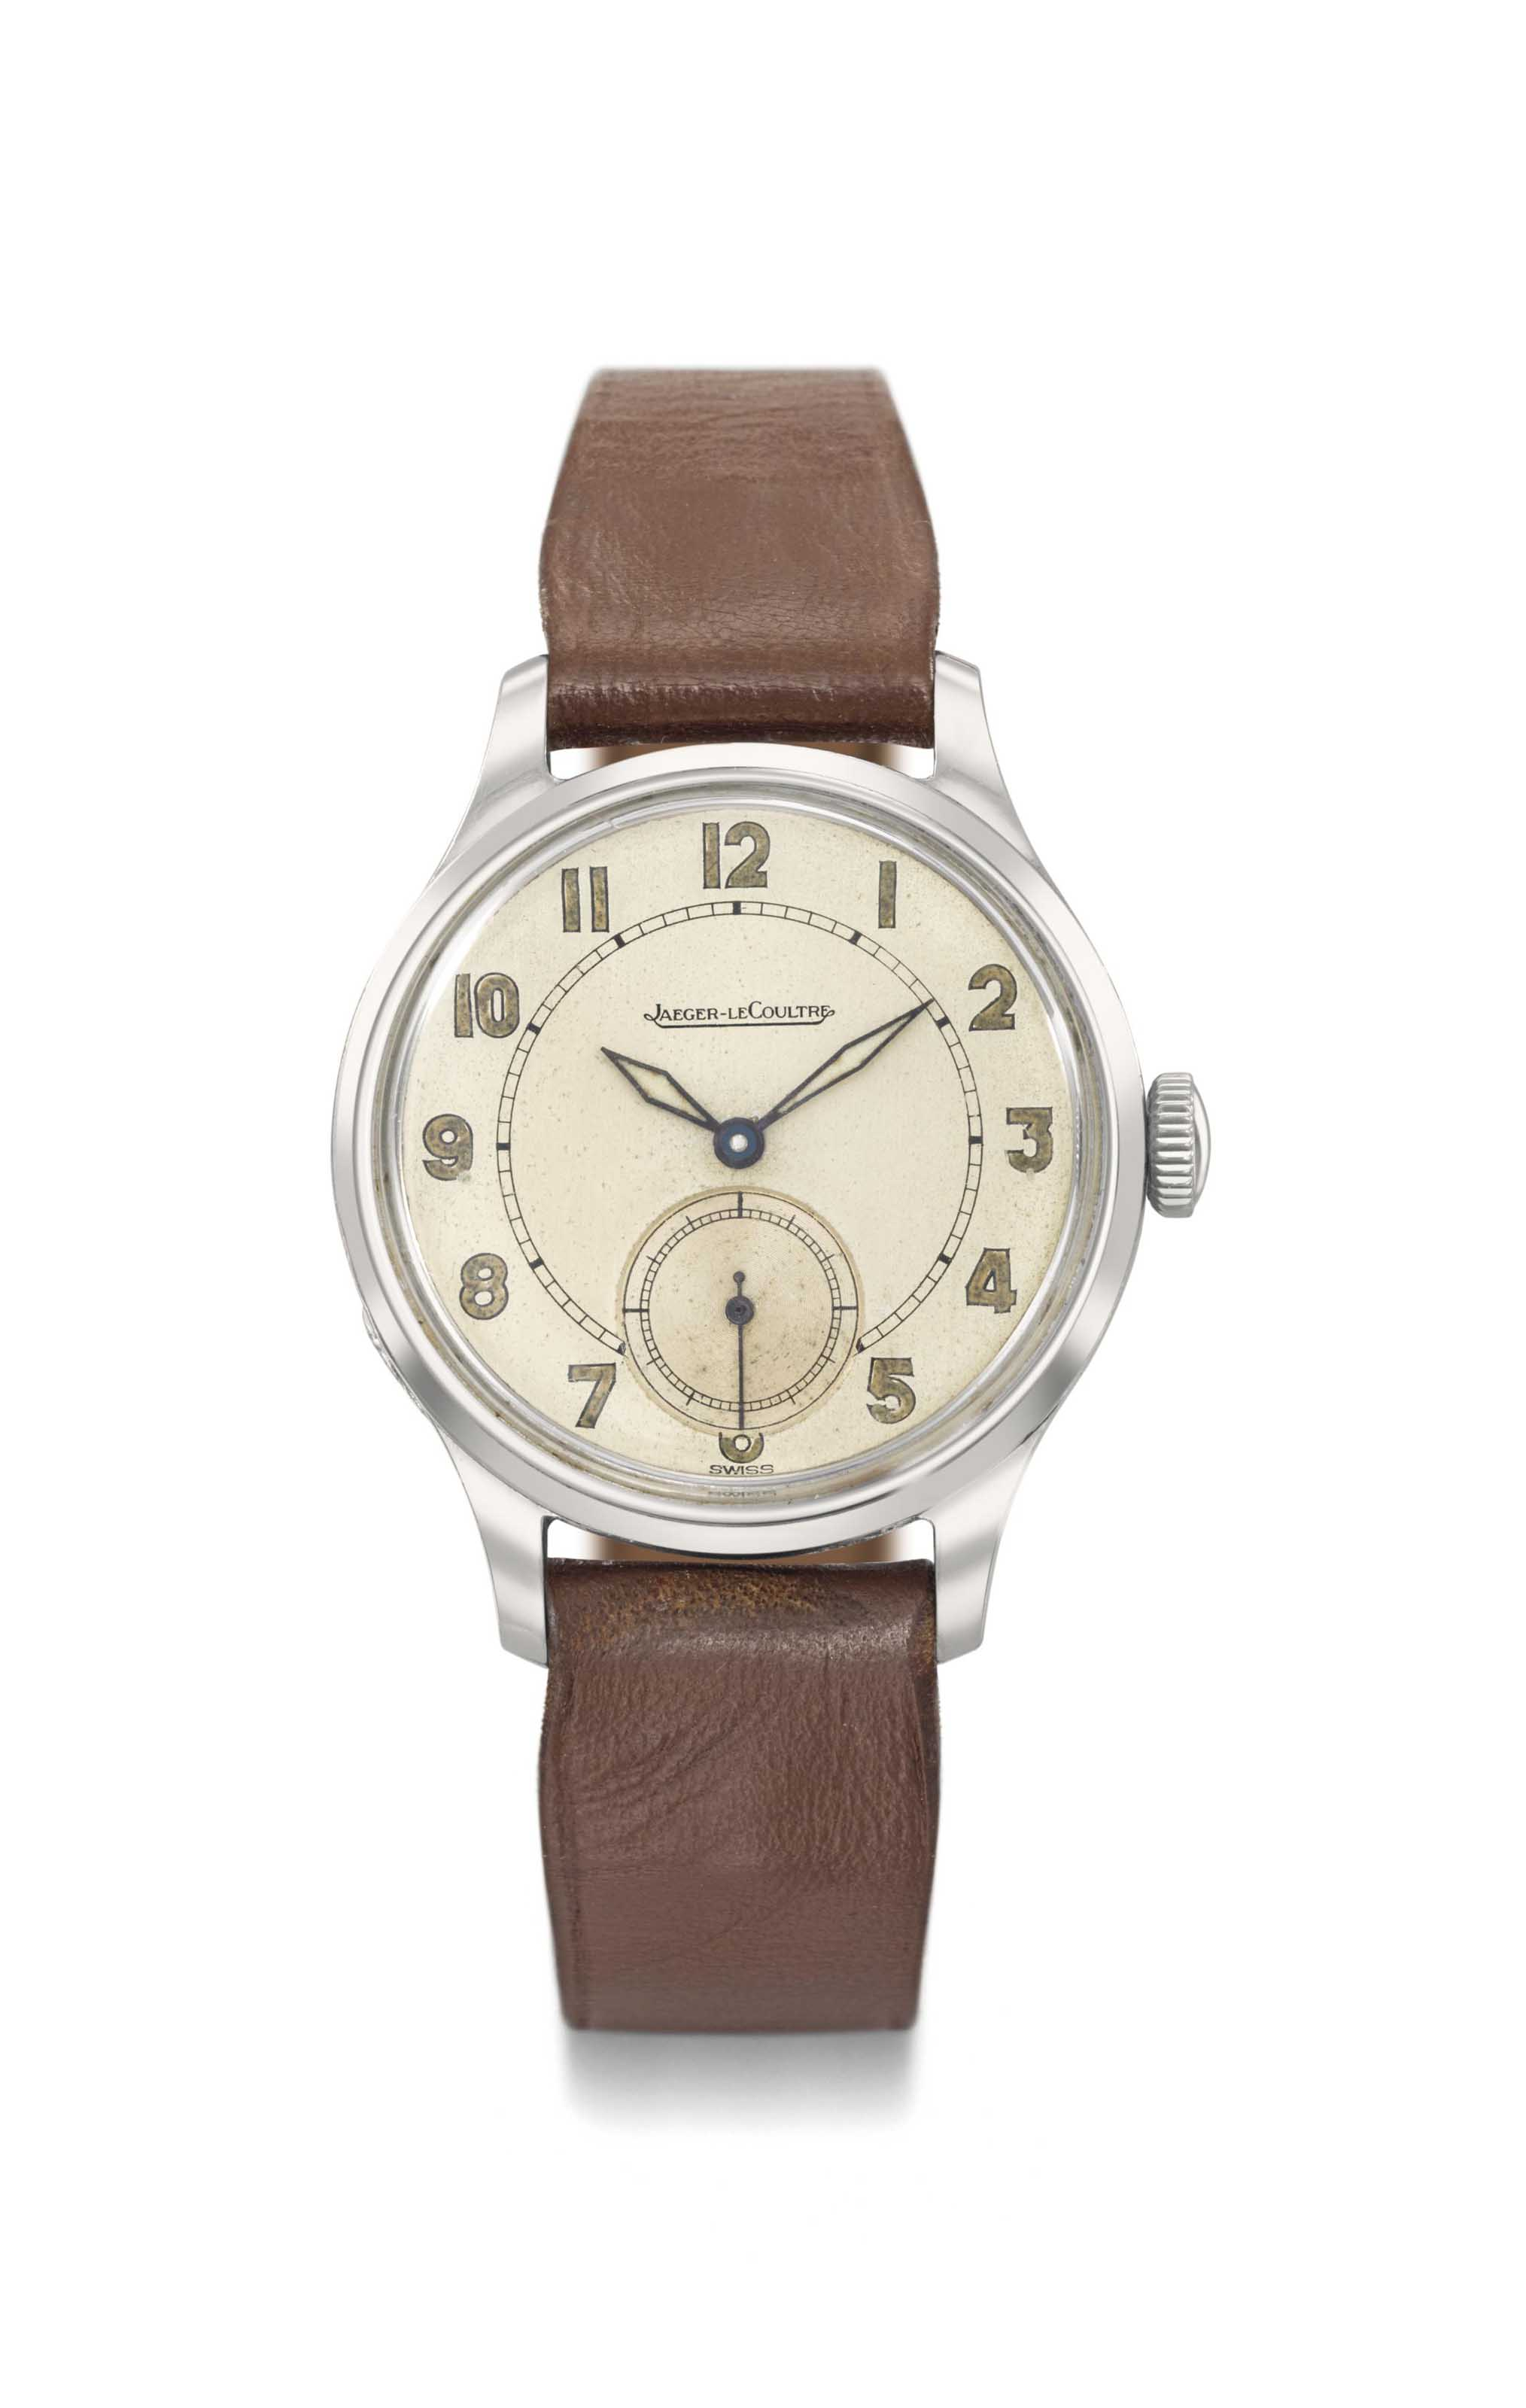 Jaeger-LeCoultre. A very elegant and historically interesting stainless steel wristwatch